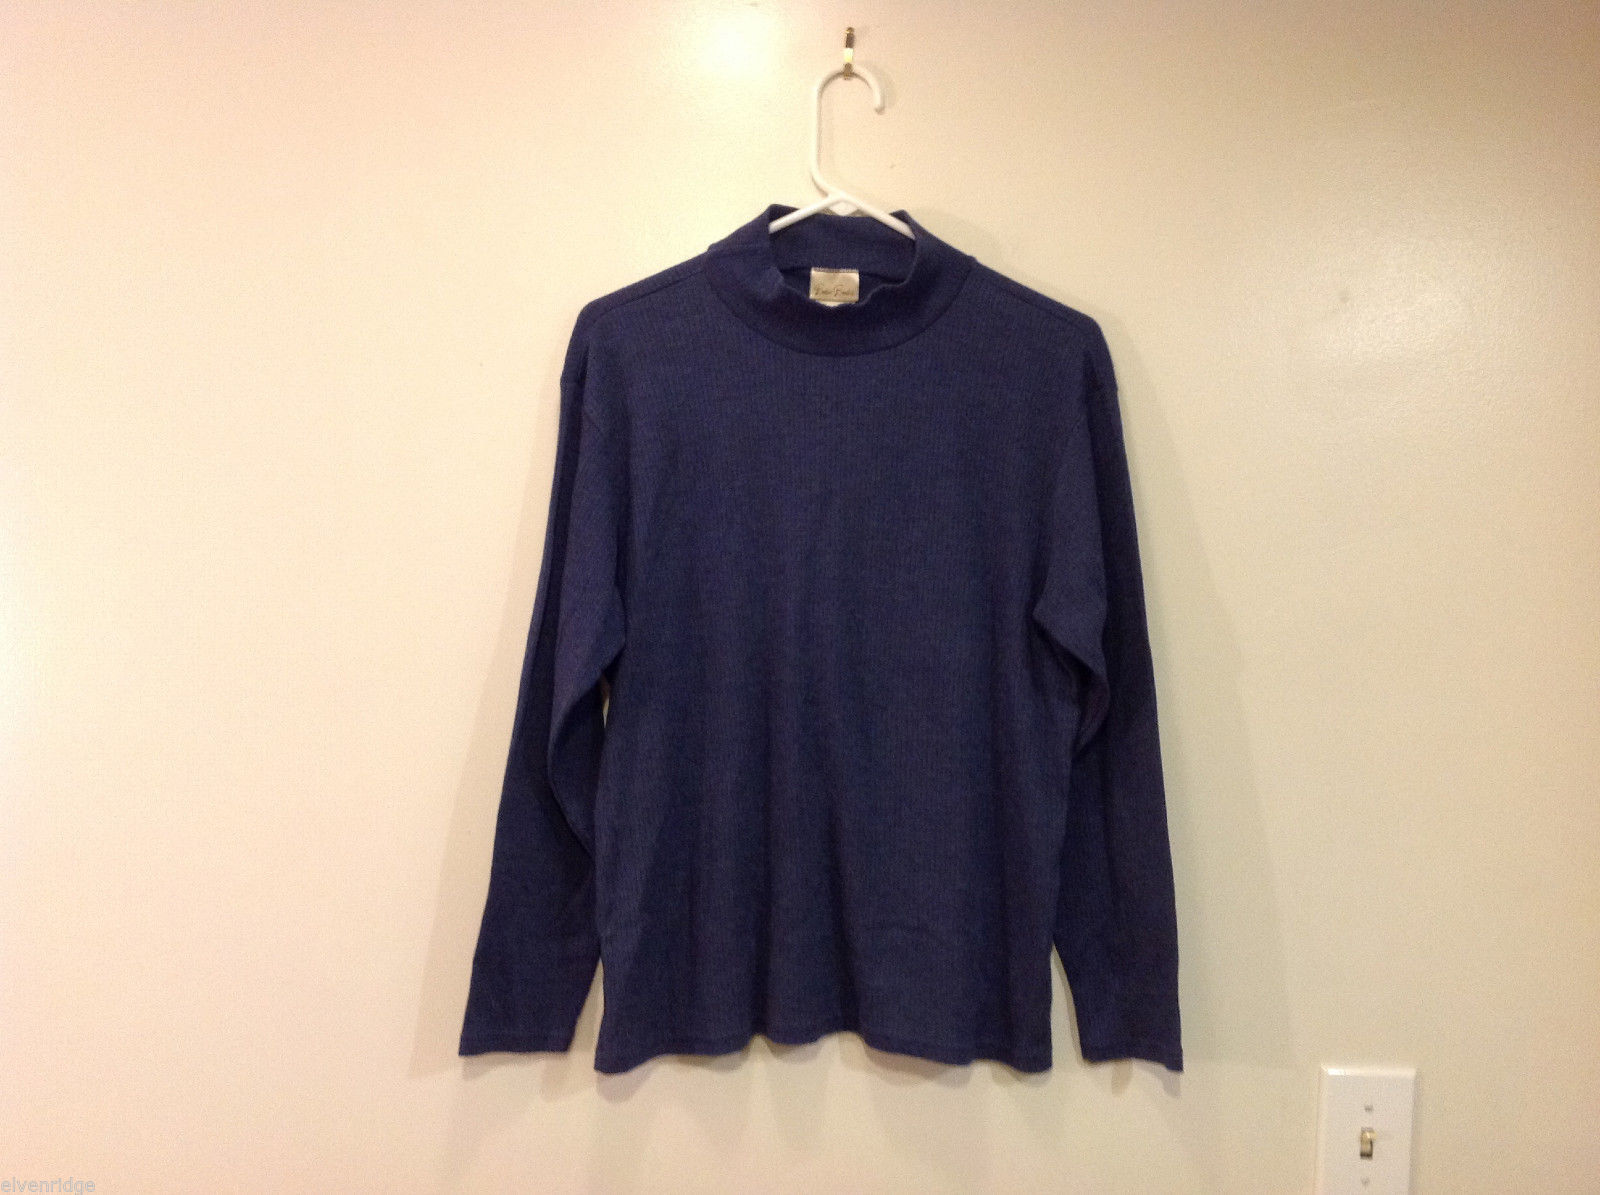 Bobbie Brooks Dark Blue Turtleneck Sweater, Size L (12/14)